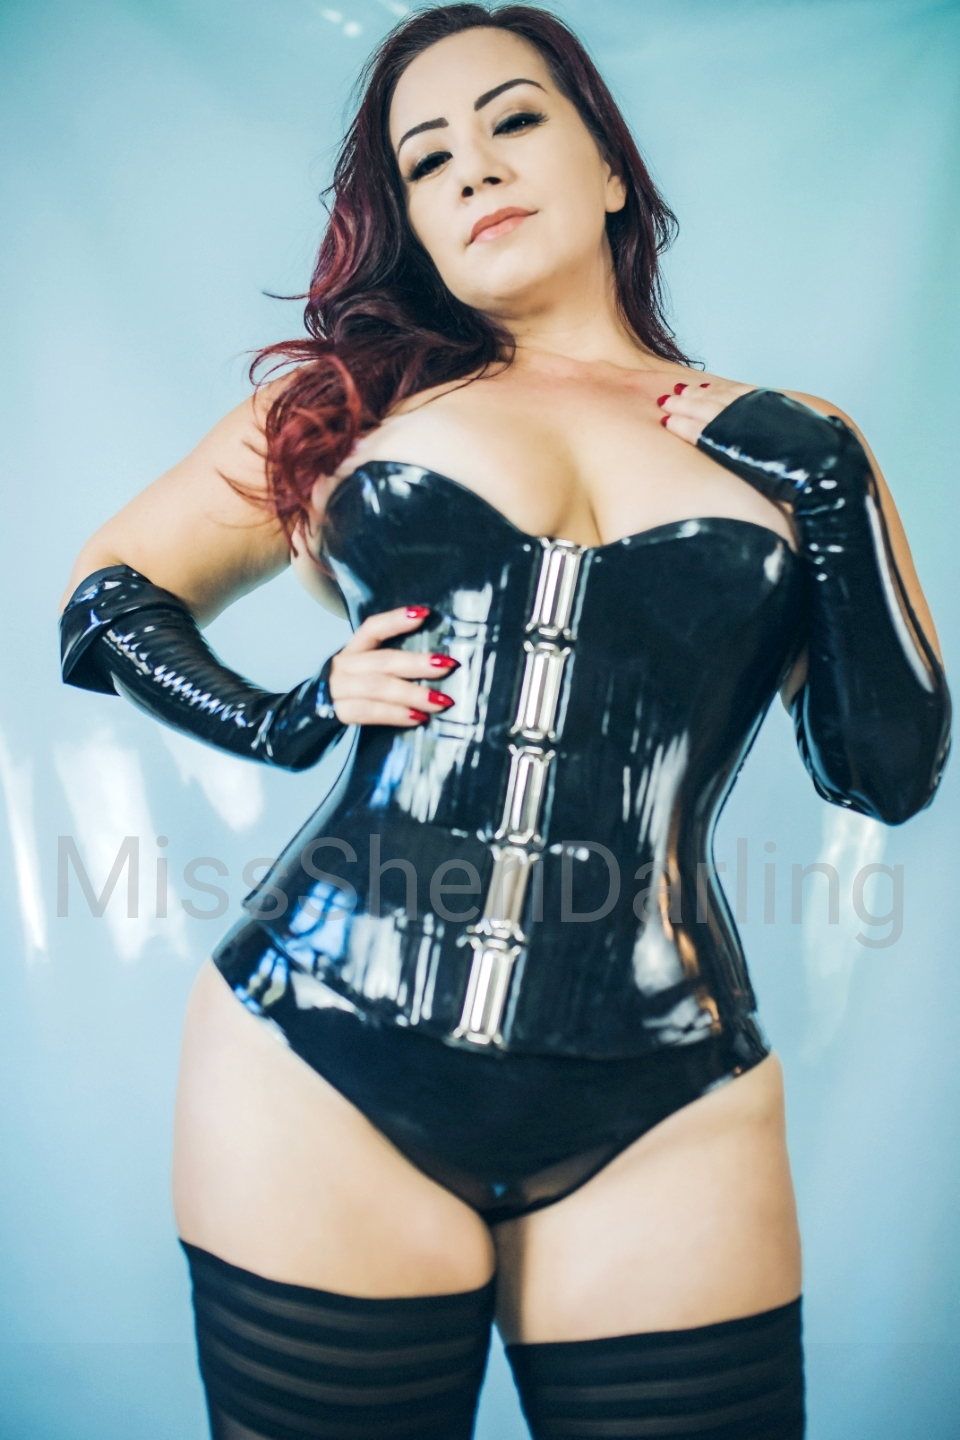 goddess sheri darling dominatrix